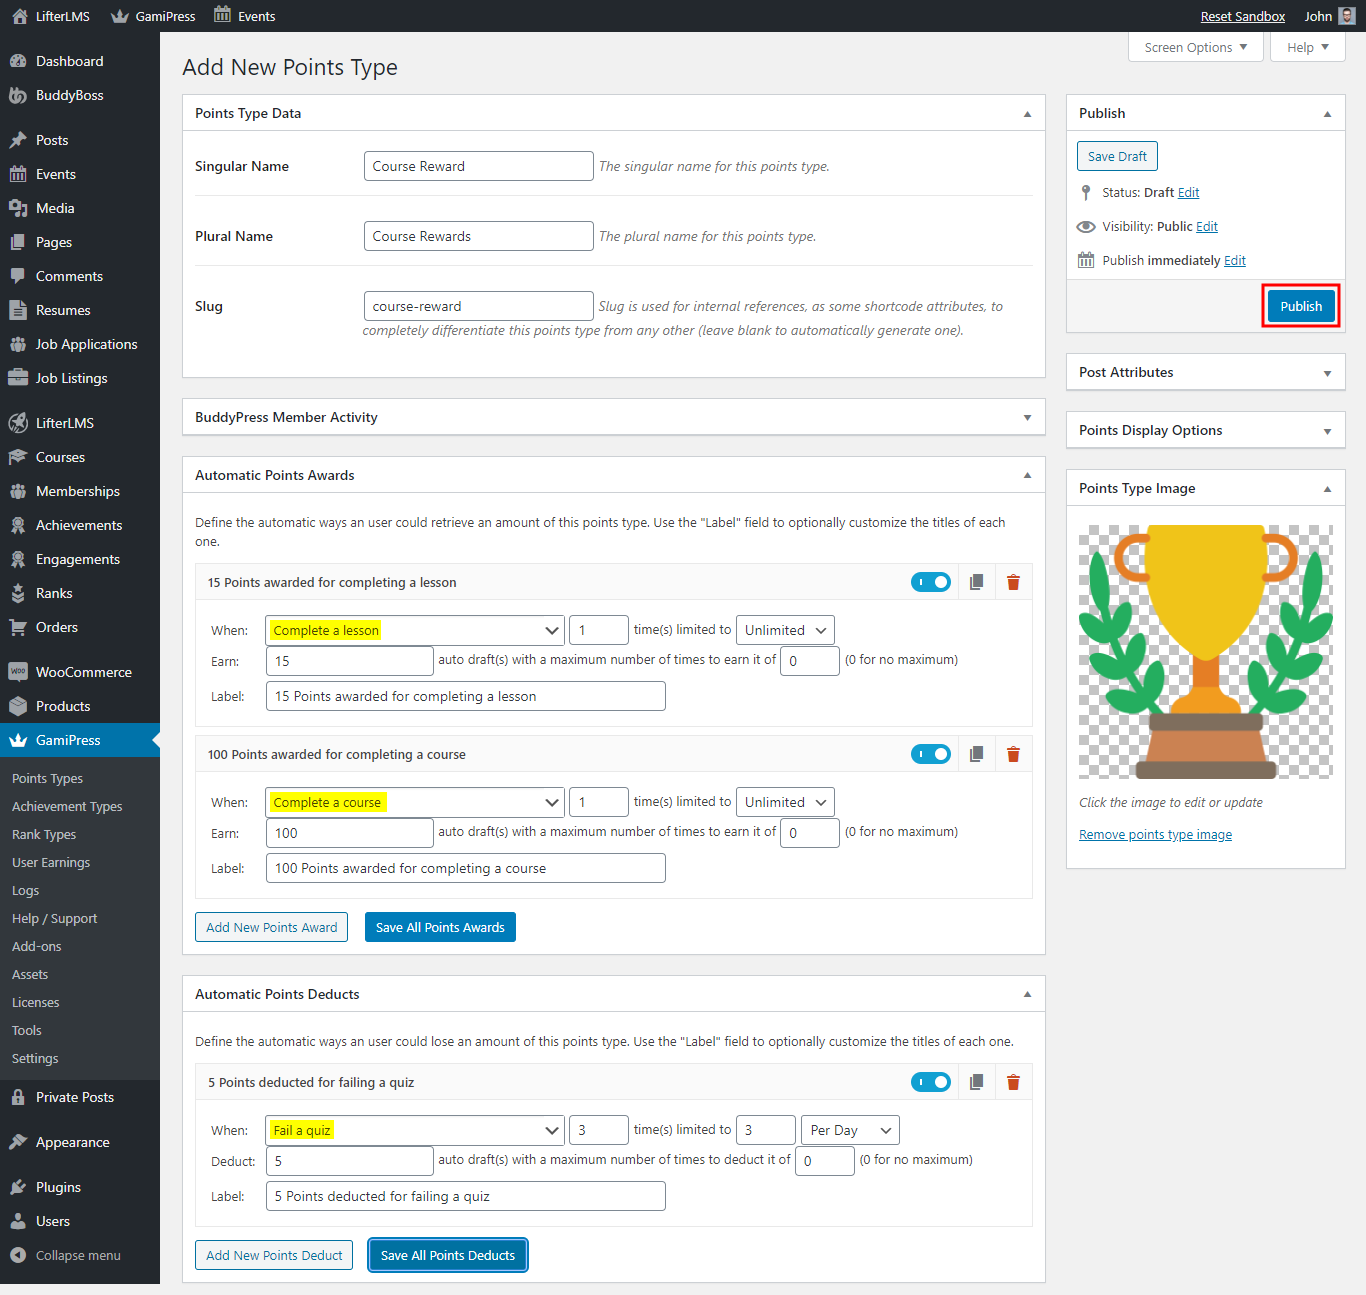 GamiPress - LifterLMS Integration - Creating point type for LifterLMS events